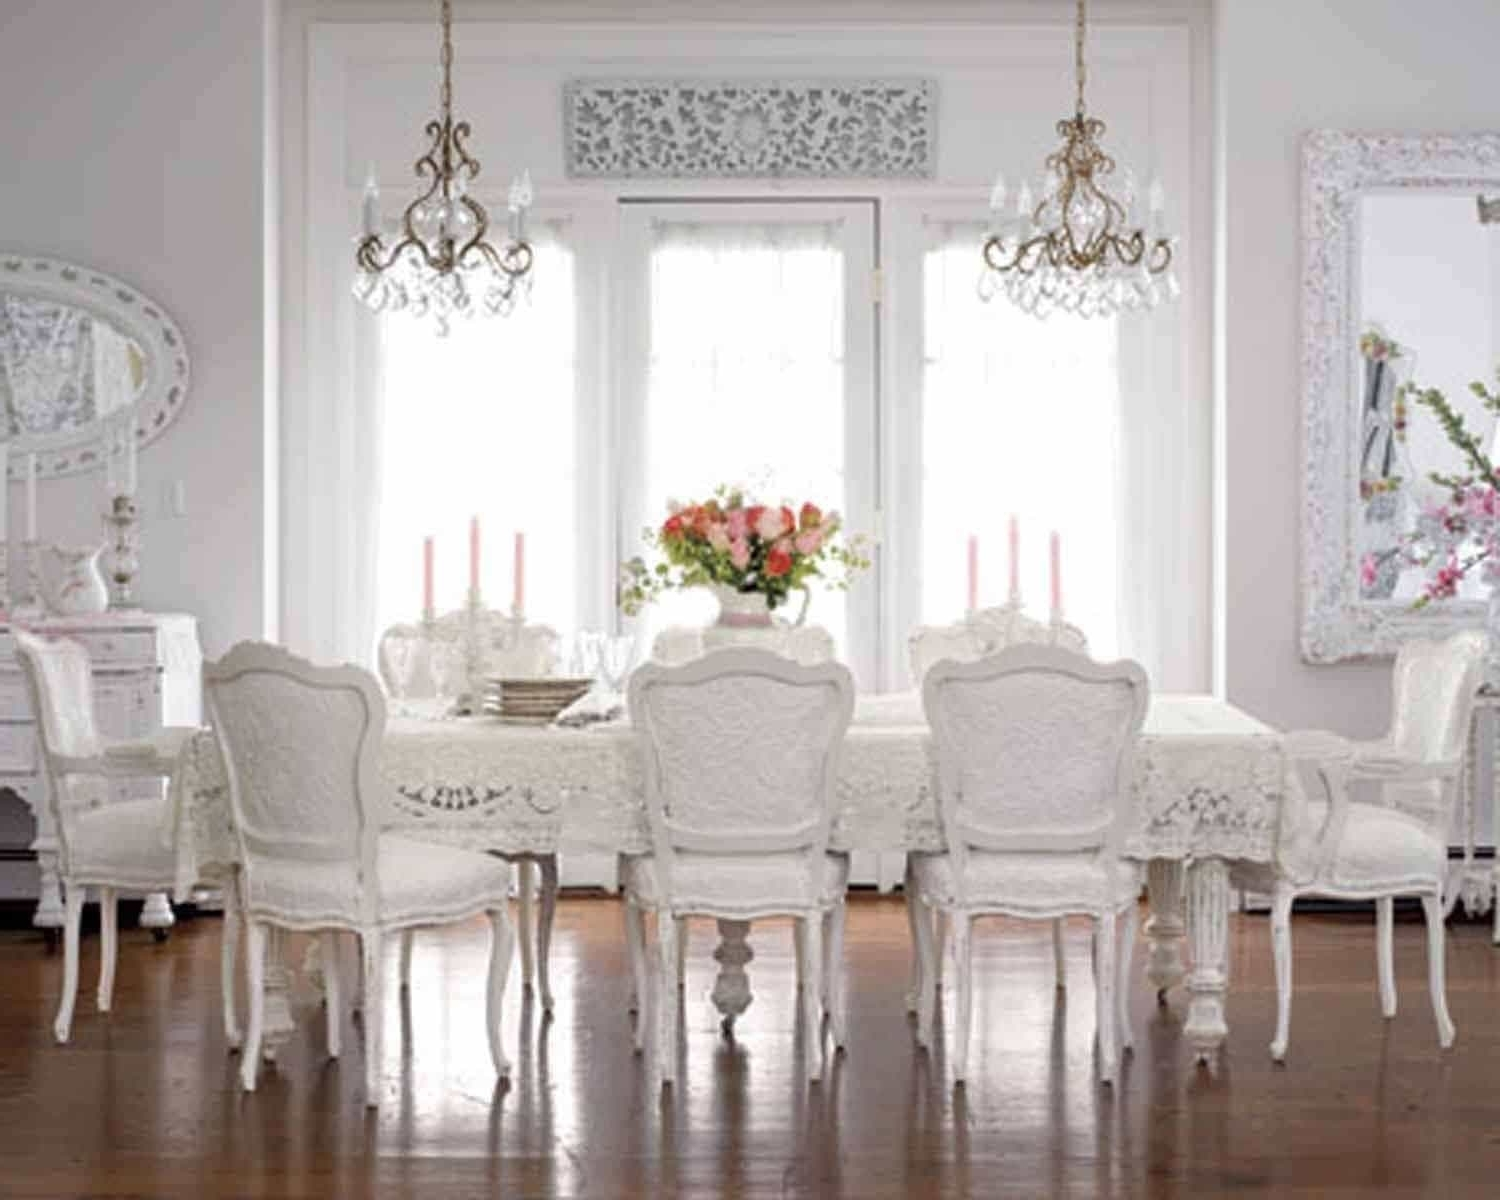 Large Shabby Chic Dining Room With Double Small Chandeliers Over Regarding Newest Small Shabby Chic Chandelier (View 4 of 20)